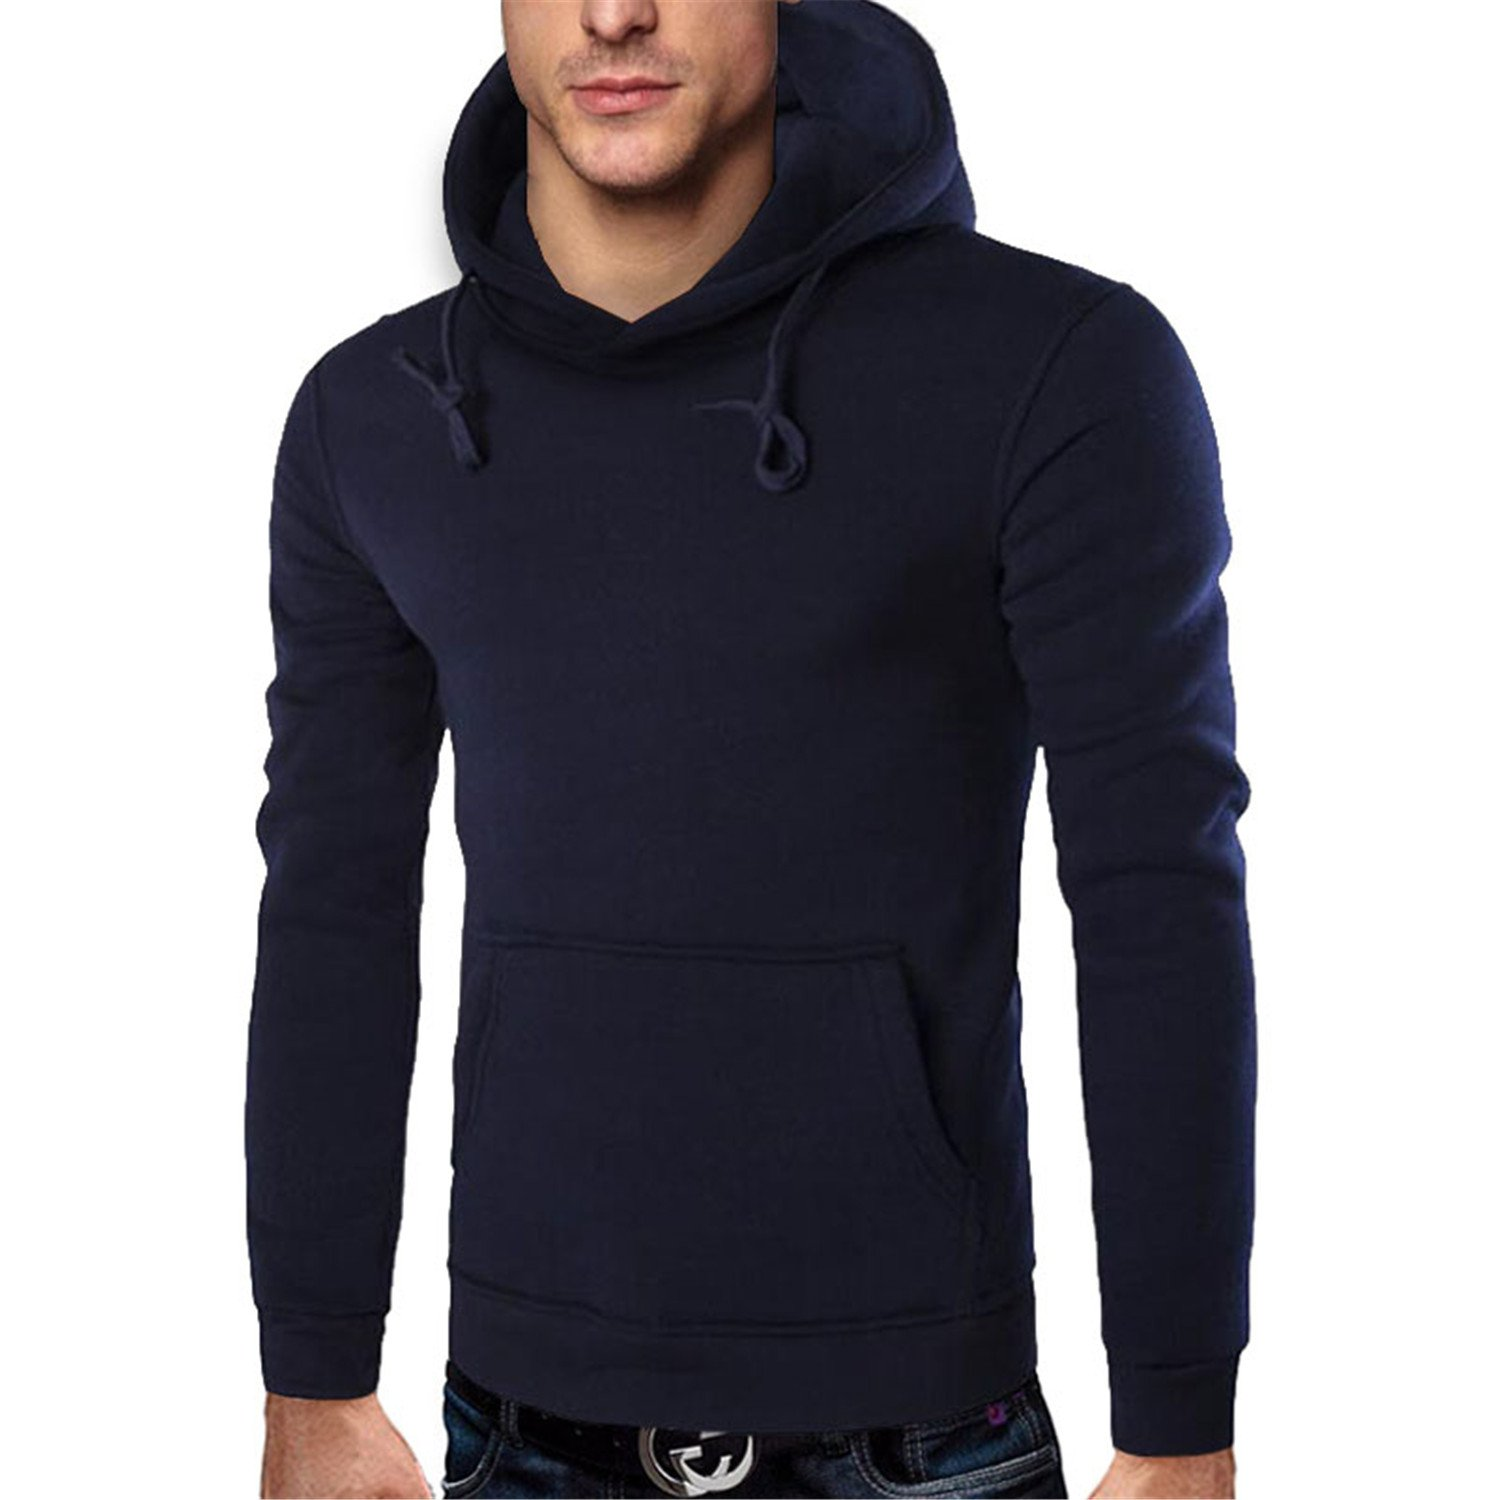 AHAJASPER Stylish Mens Brand Solid Color Lapel Pullover Hoodie Sweatshirt Slim Fit Men Hoody 4XL black M